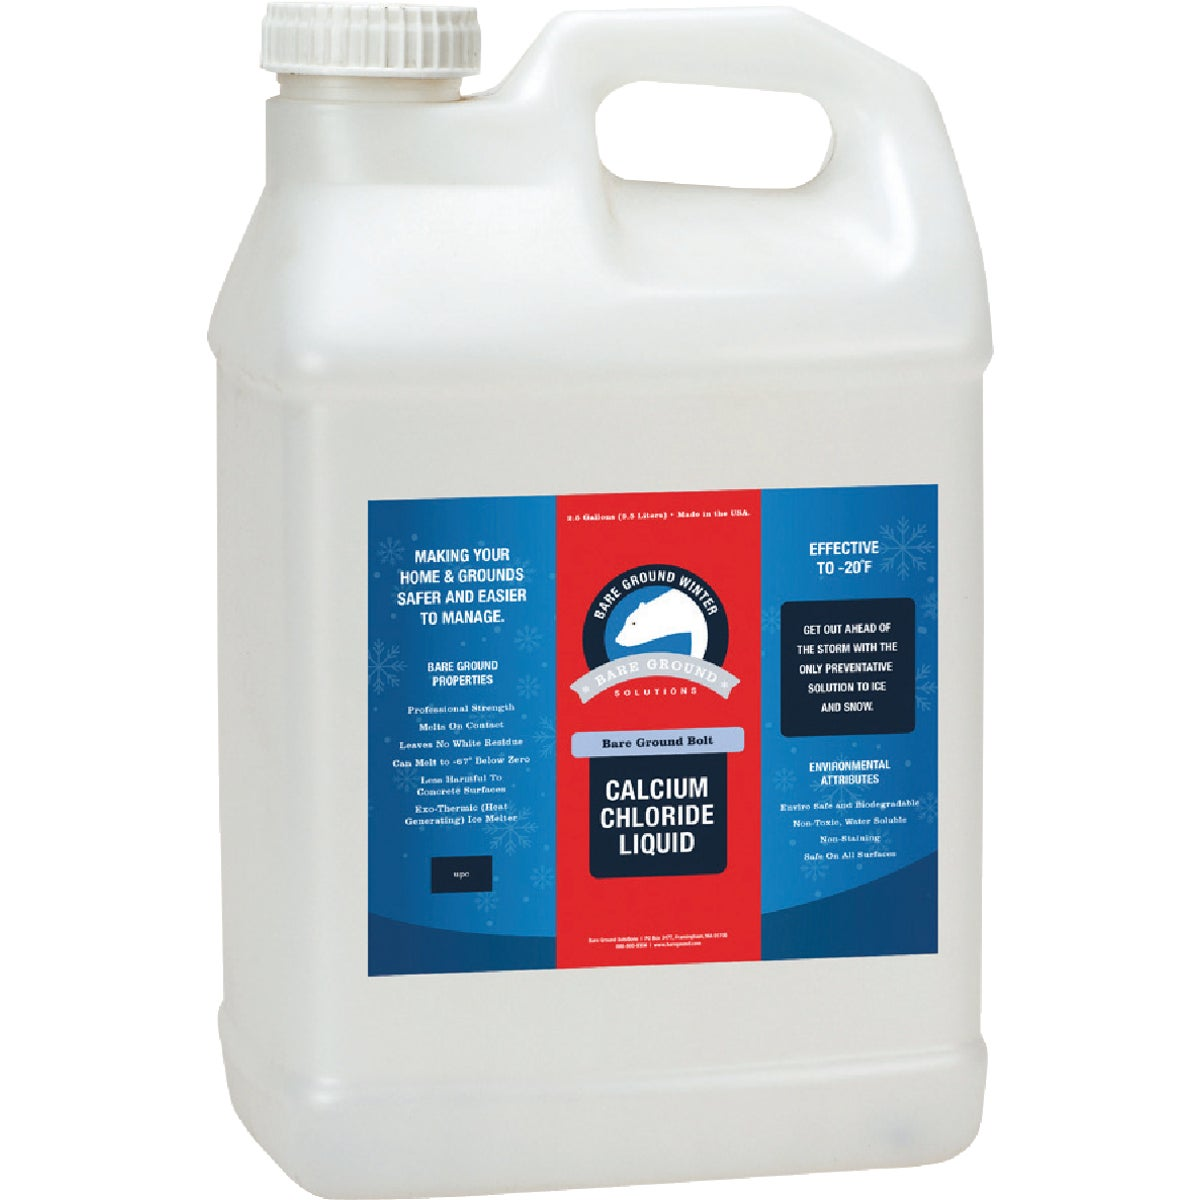 2.5GAL LIQUID ICE MELT - 853374002060 by Asi Innovations